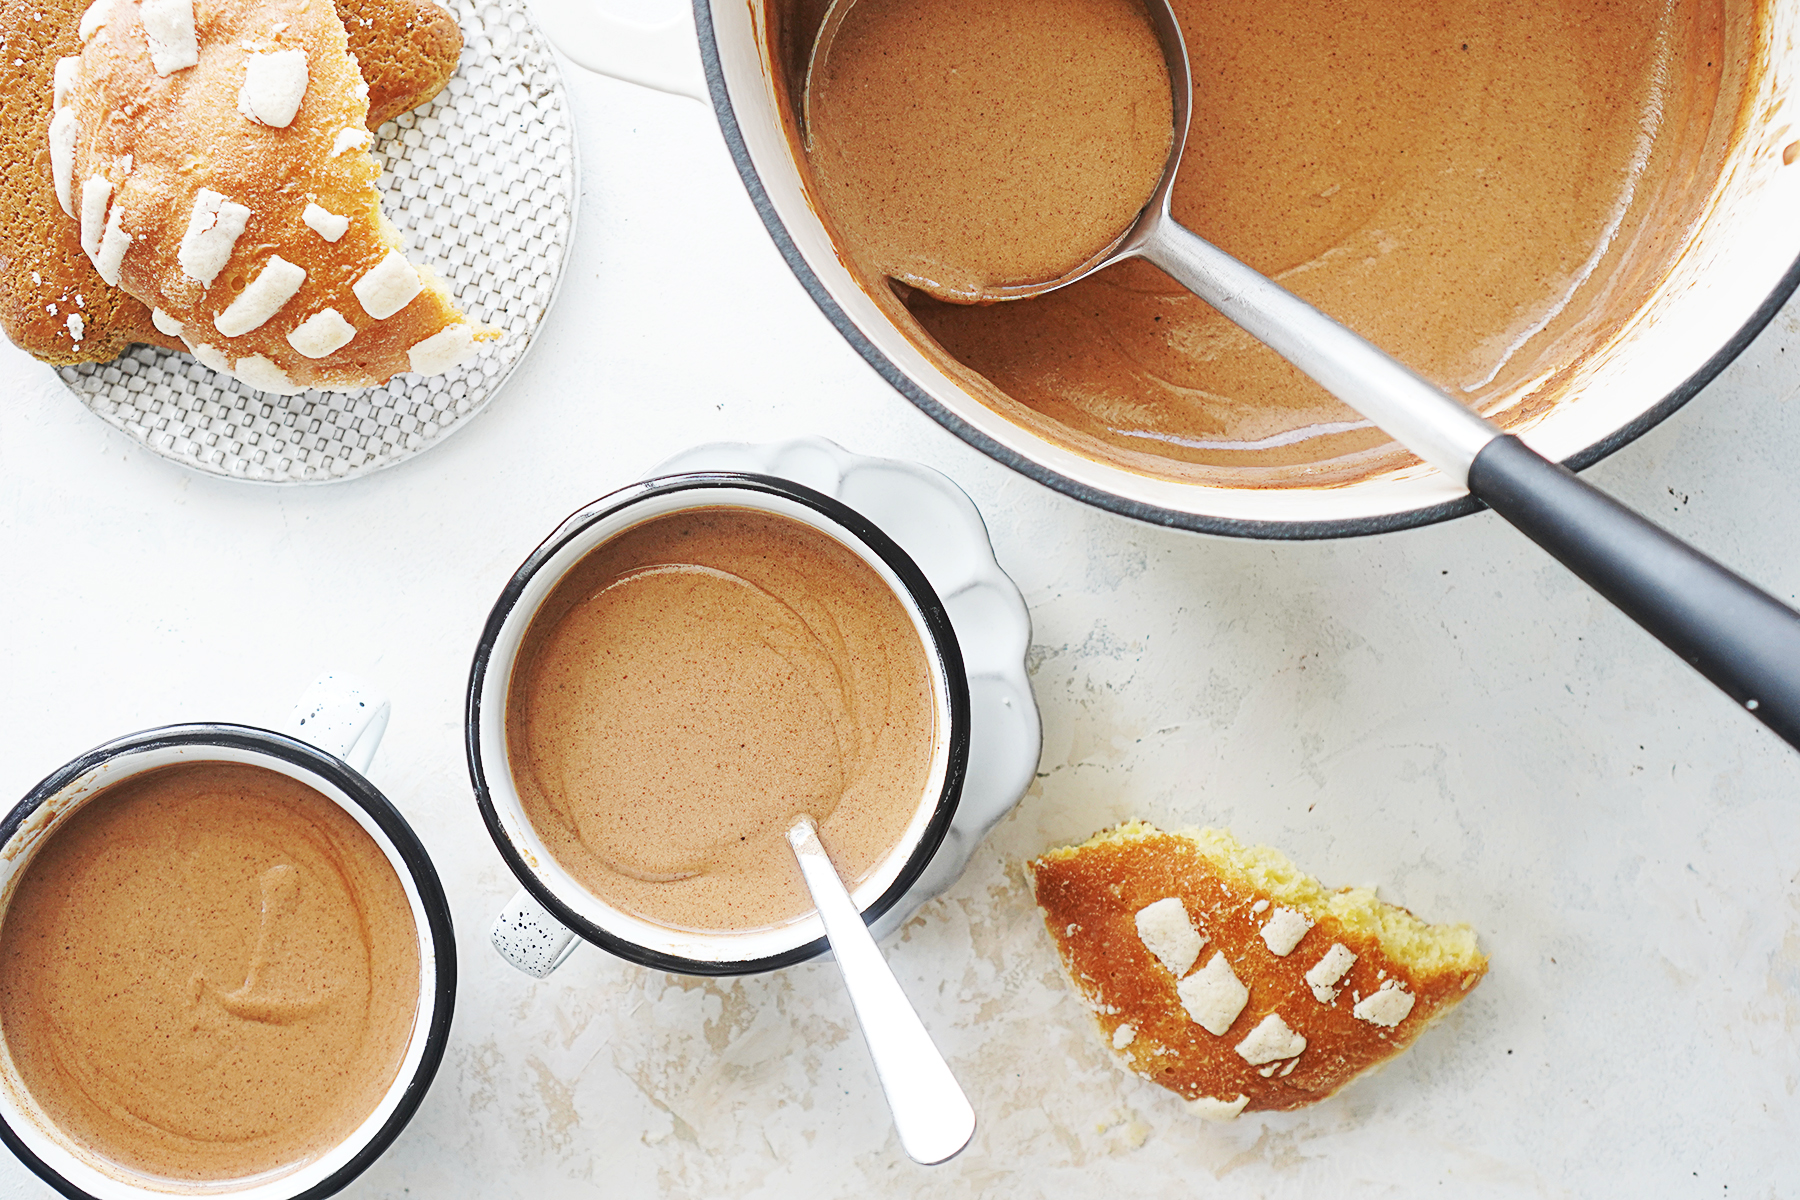 A saucepan with mexican chocolate drink and two mugs and sweet bread on the side